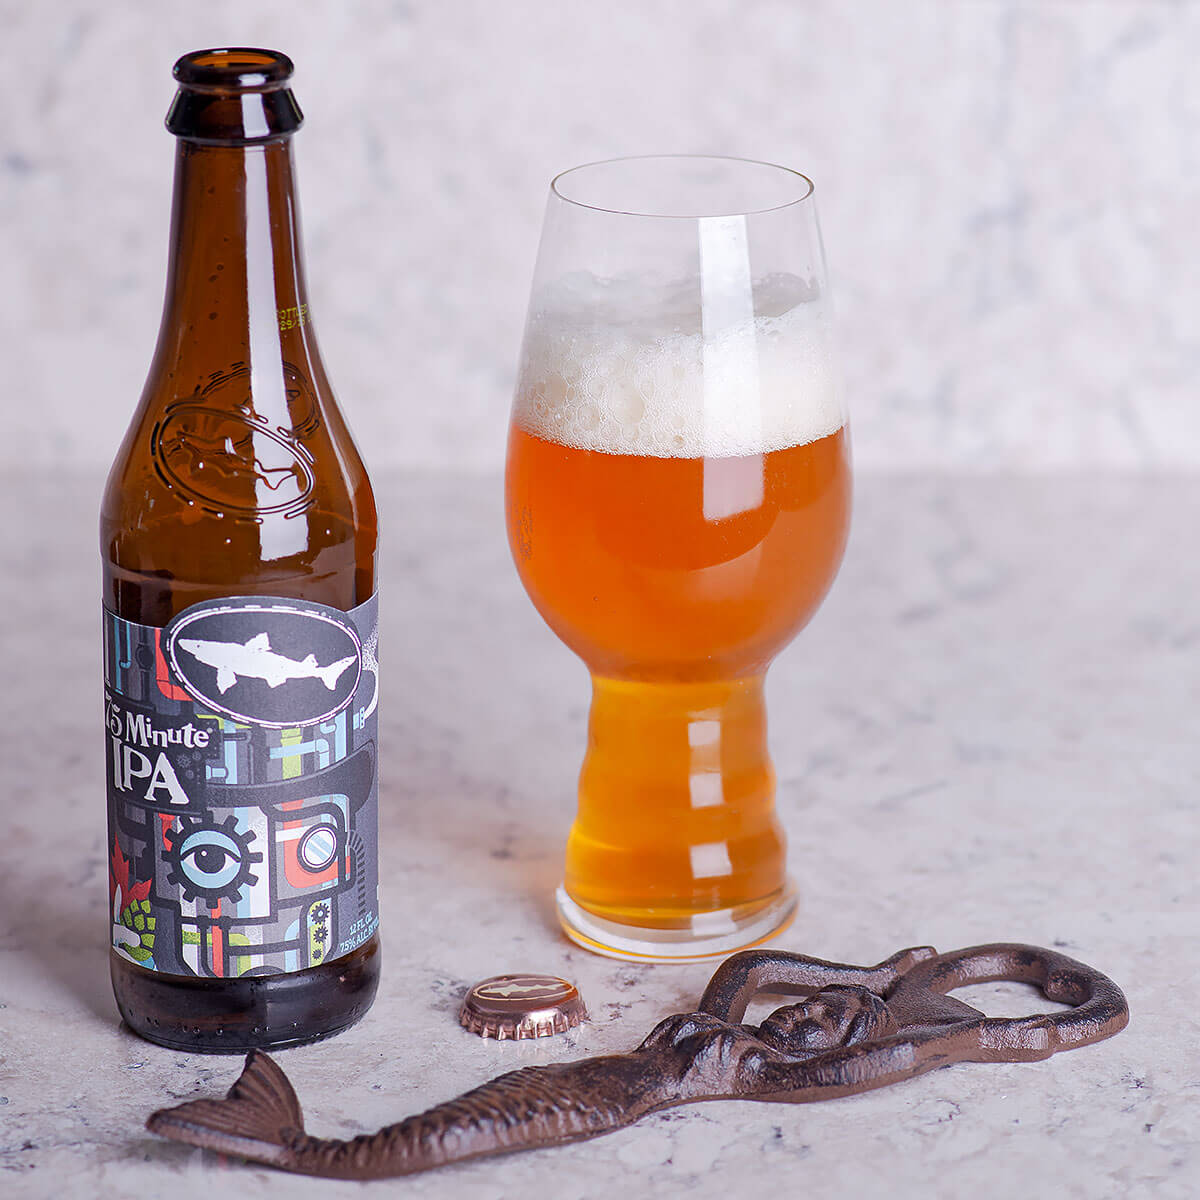 The 75 Minute IPA is an American IPA by Dogfish Head Craft Brewery that blends various hop flavors with baked bread and maple syrup.